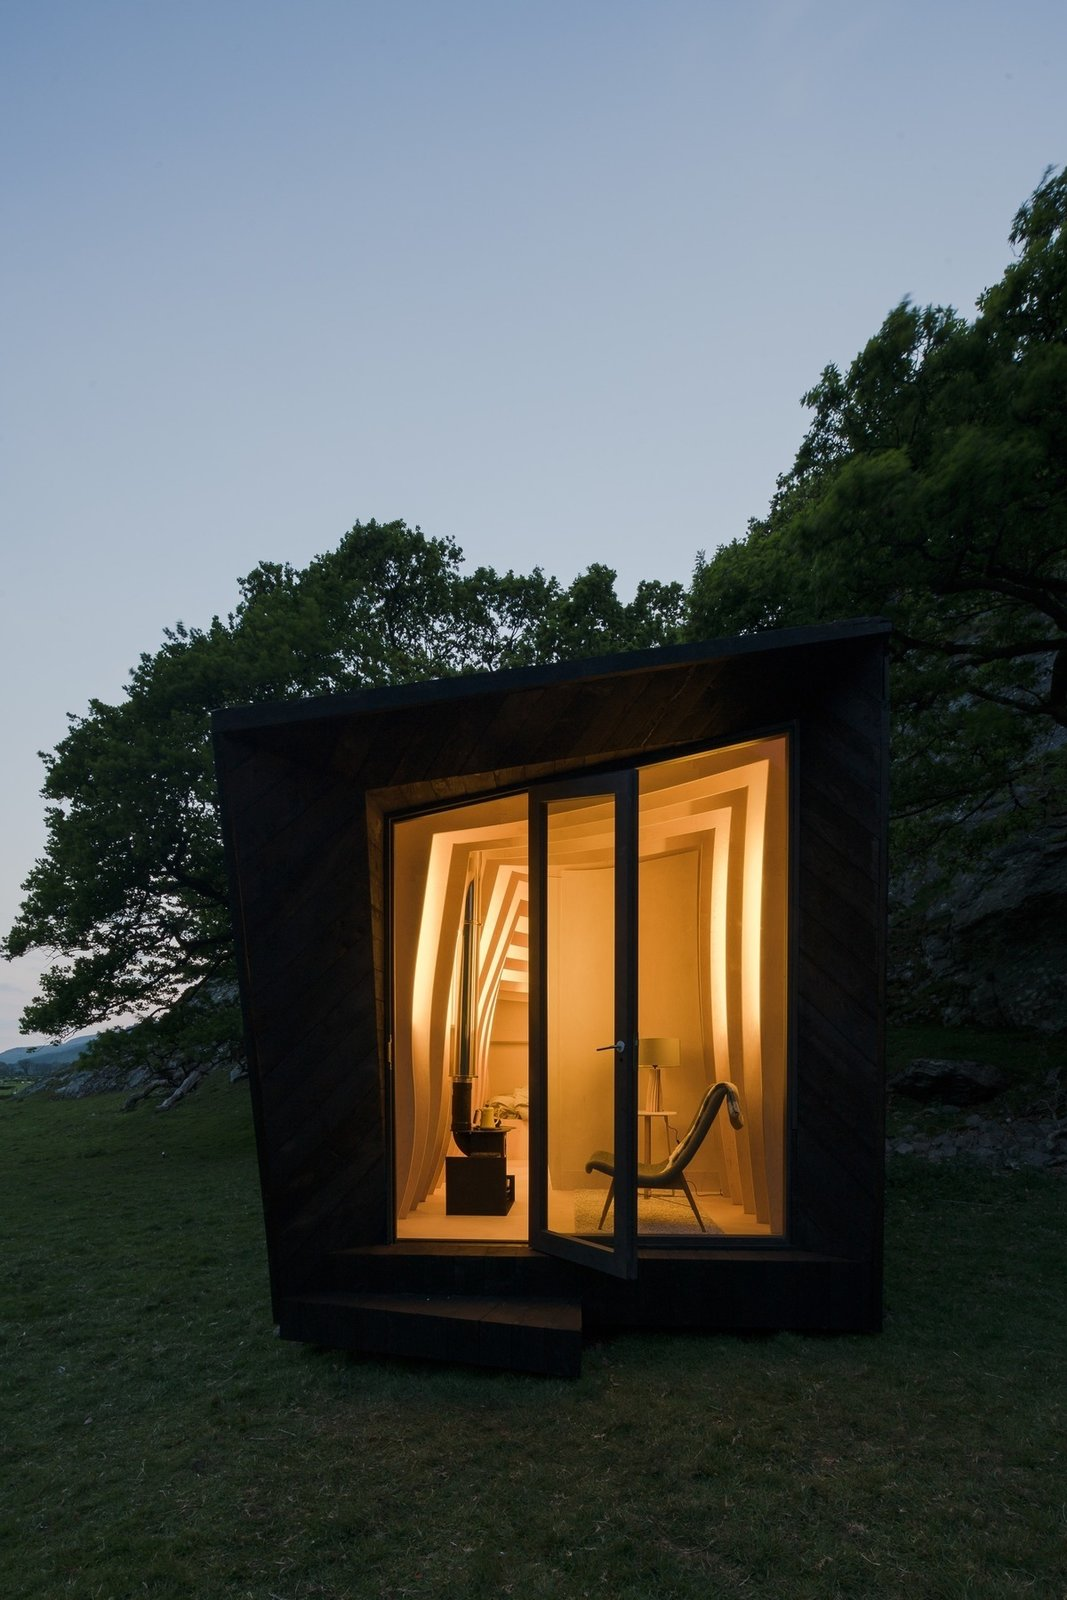 Photo 11 of 11 in Tour One of Epic Retreat's Tiny Pop-Up Hotel Cabins in the Welsh Countryside